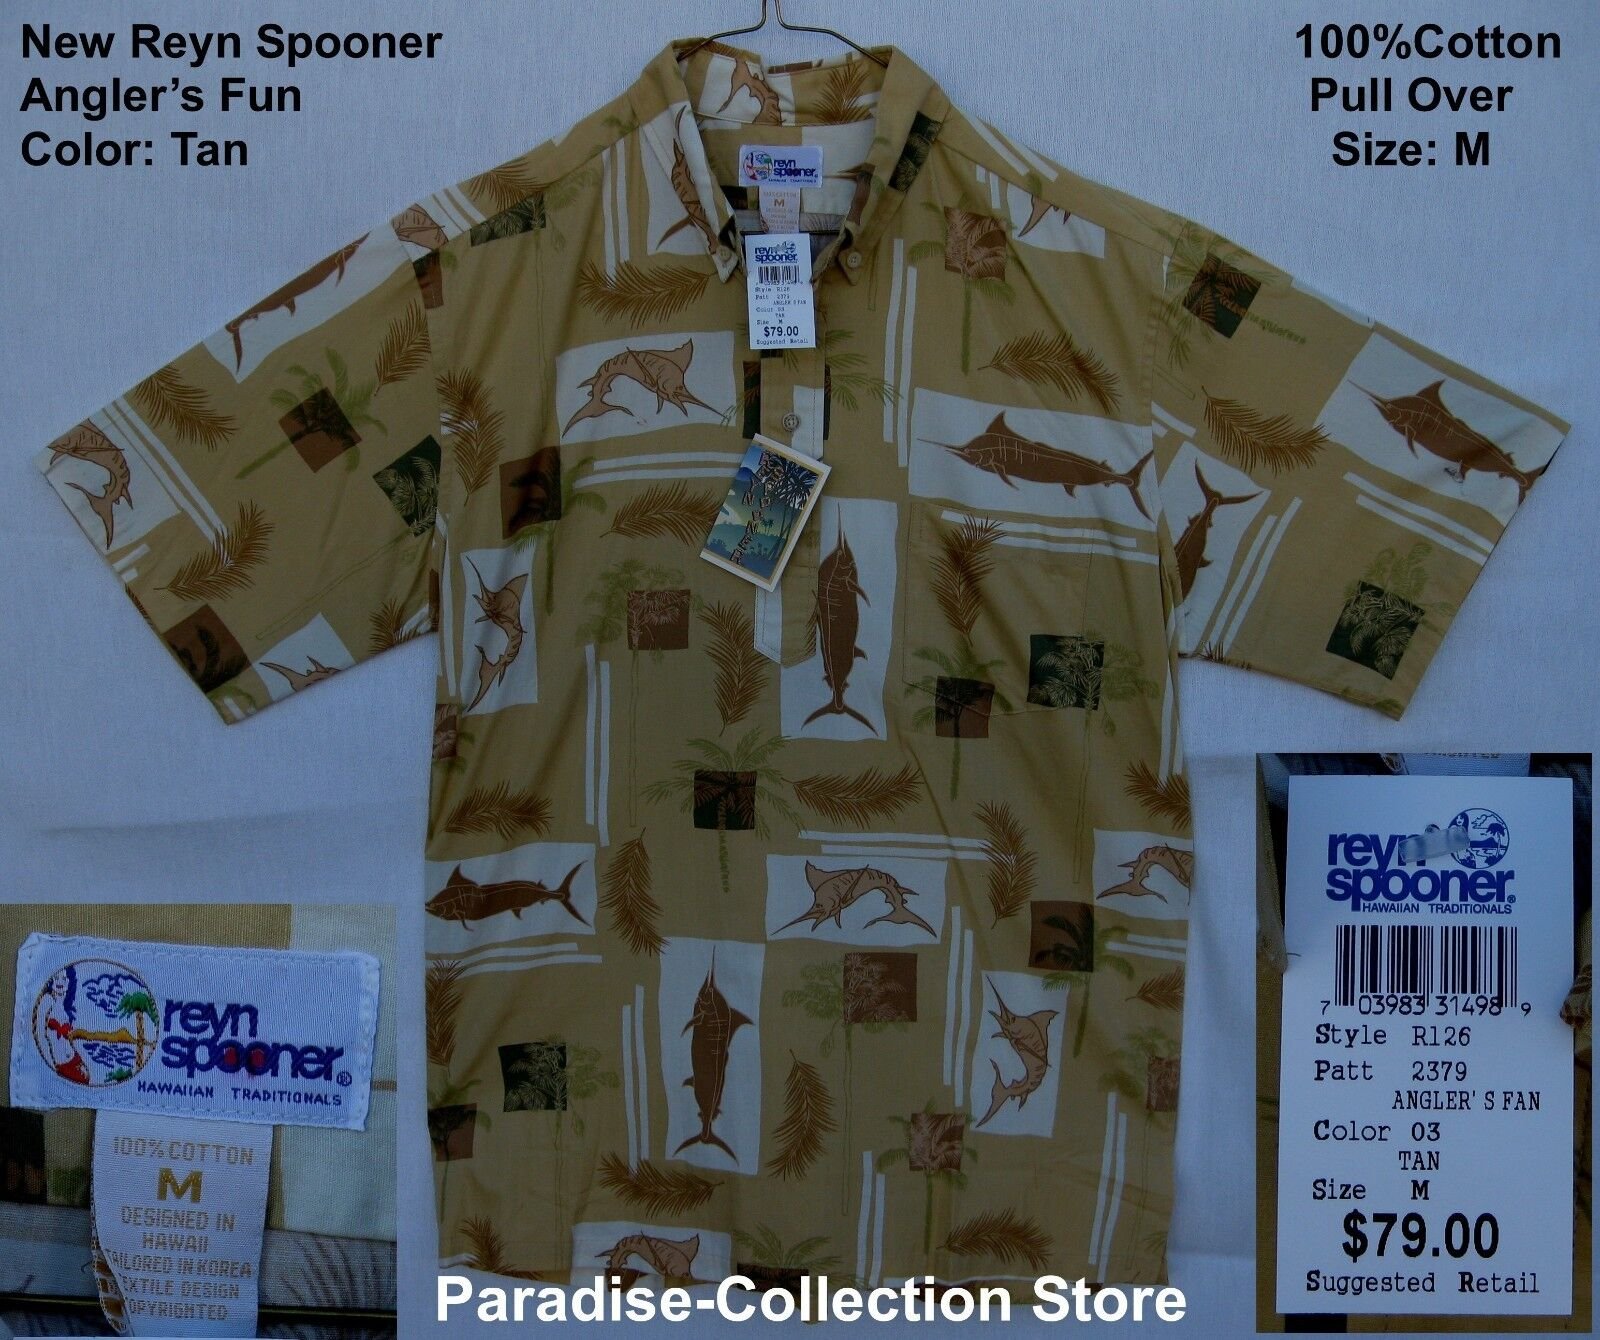 NEW REYN SPOONER BEAUTIFUL  FISHING ANGLERS FUN 100%  COTTON TAN PULL OVER  M